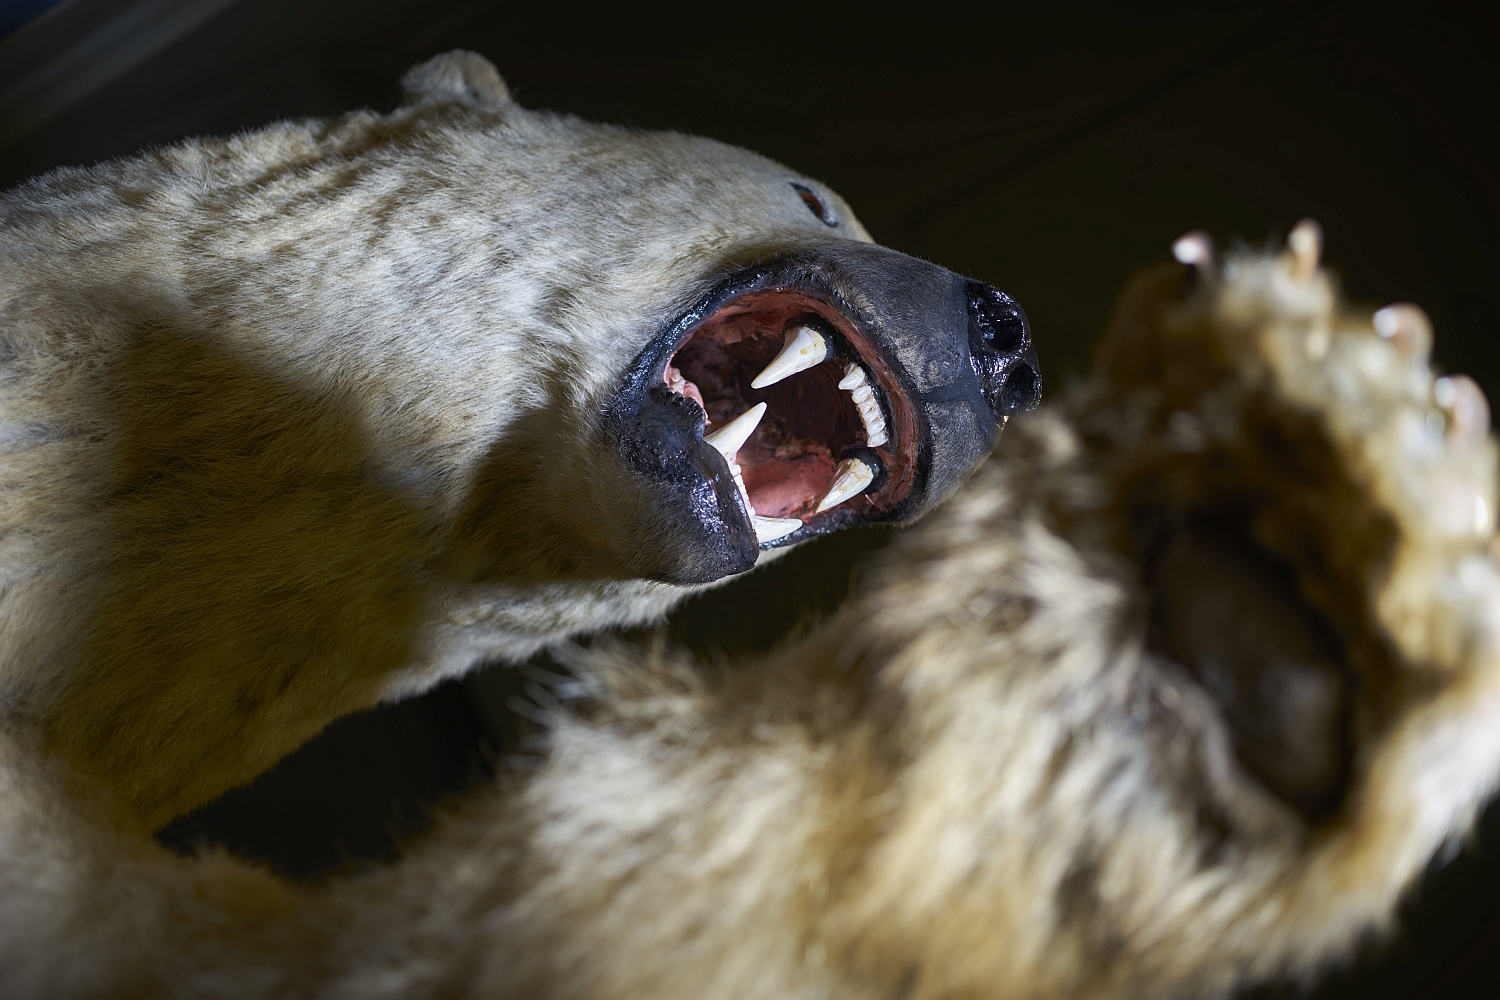 Discover Kendal Museum's antique taxidermy collection